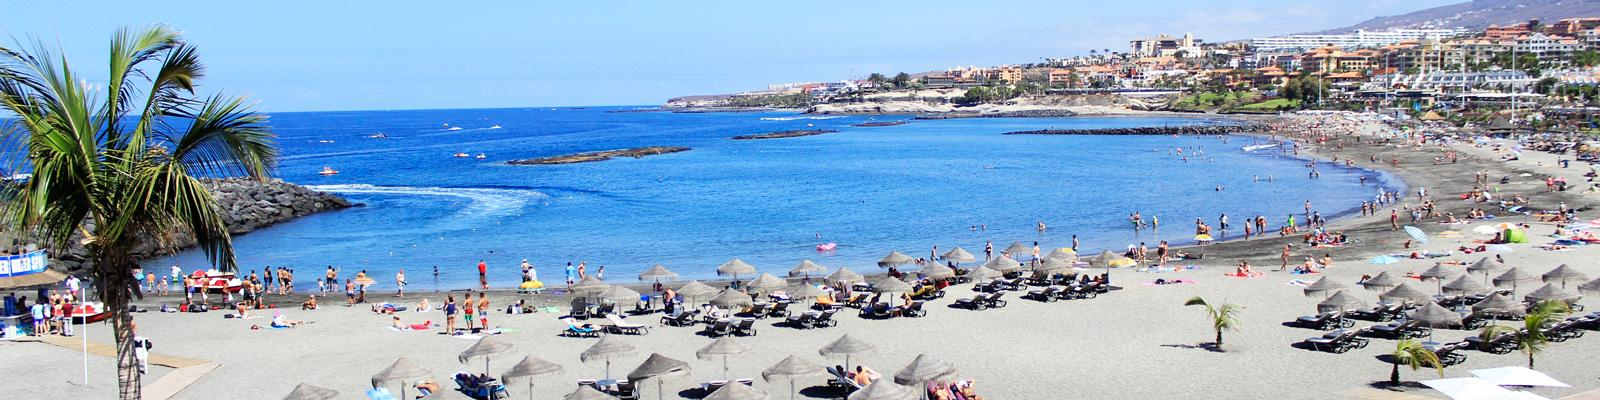 Summer 2017 - Affordable Tenerife Deal